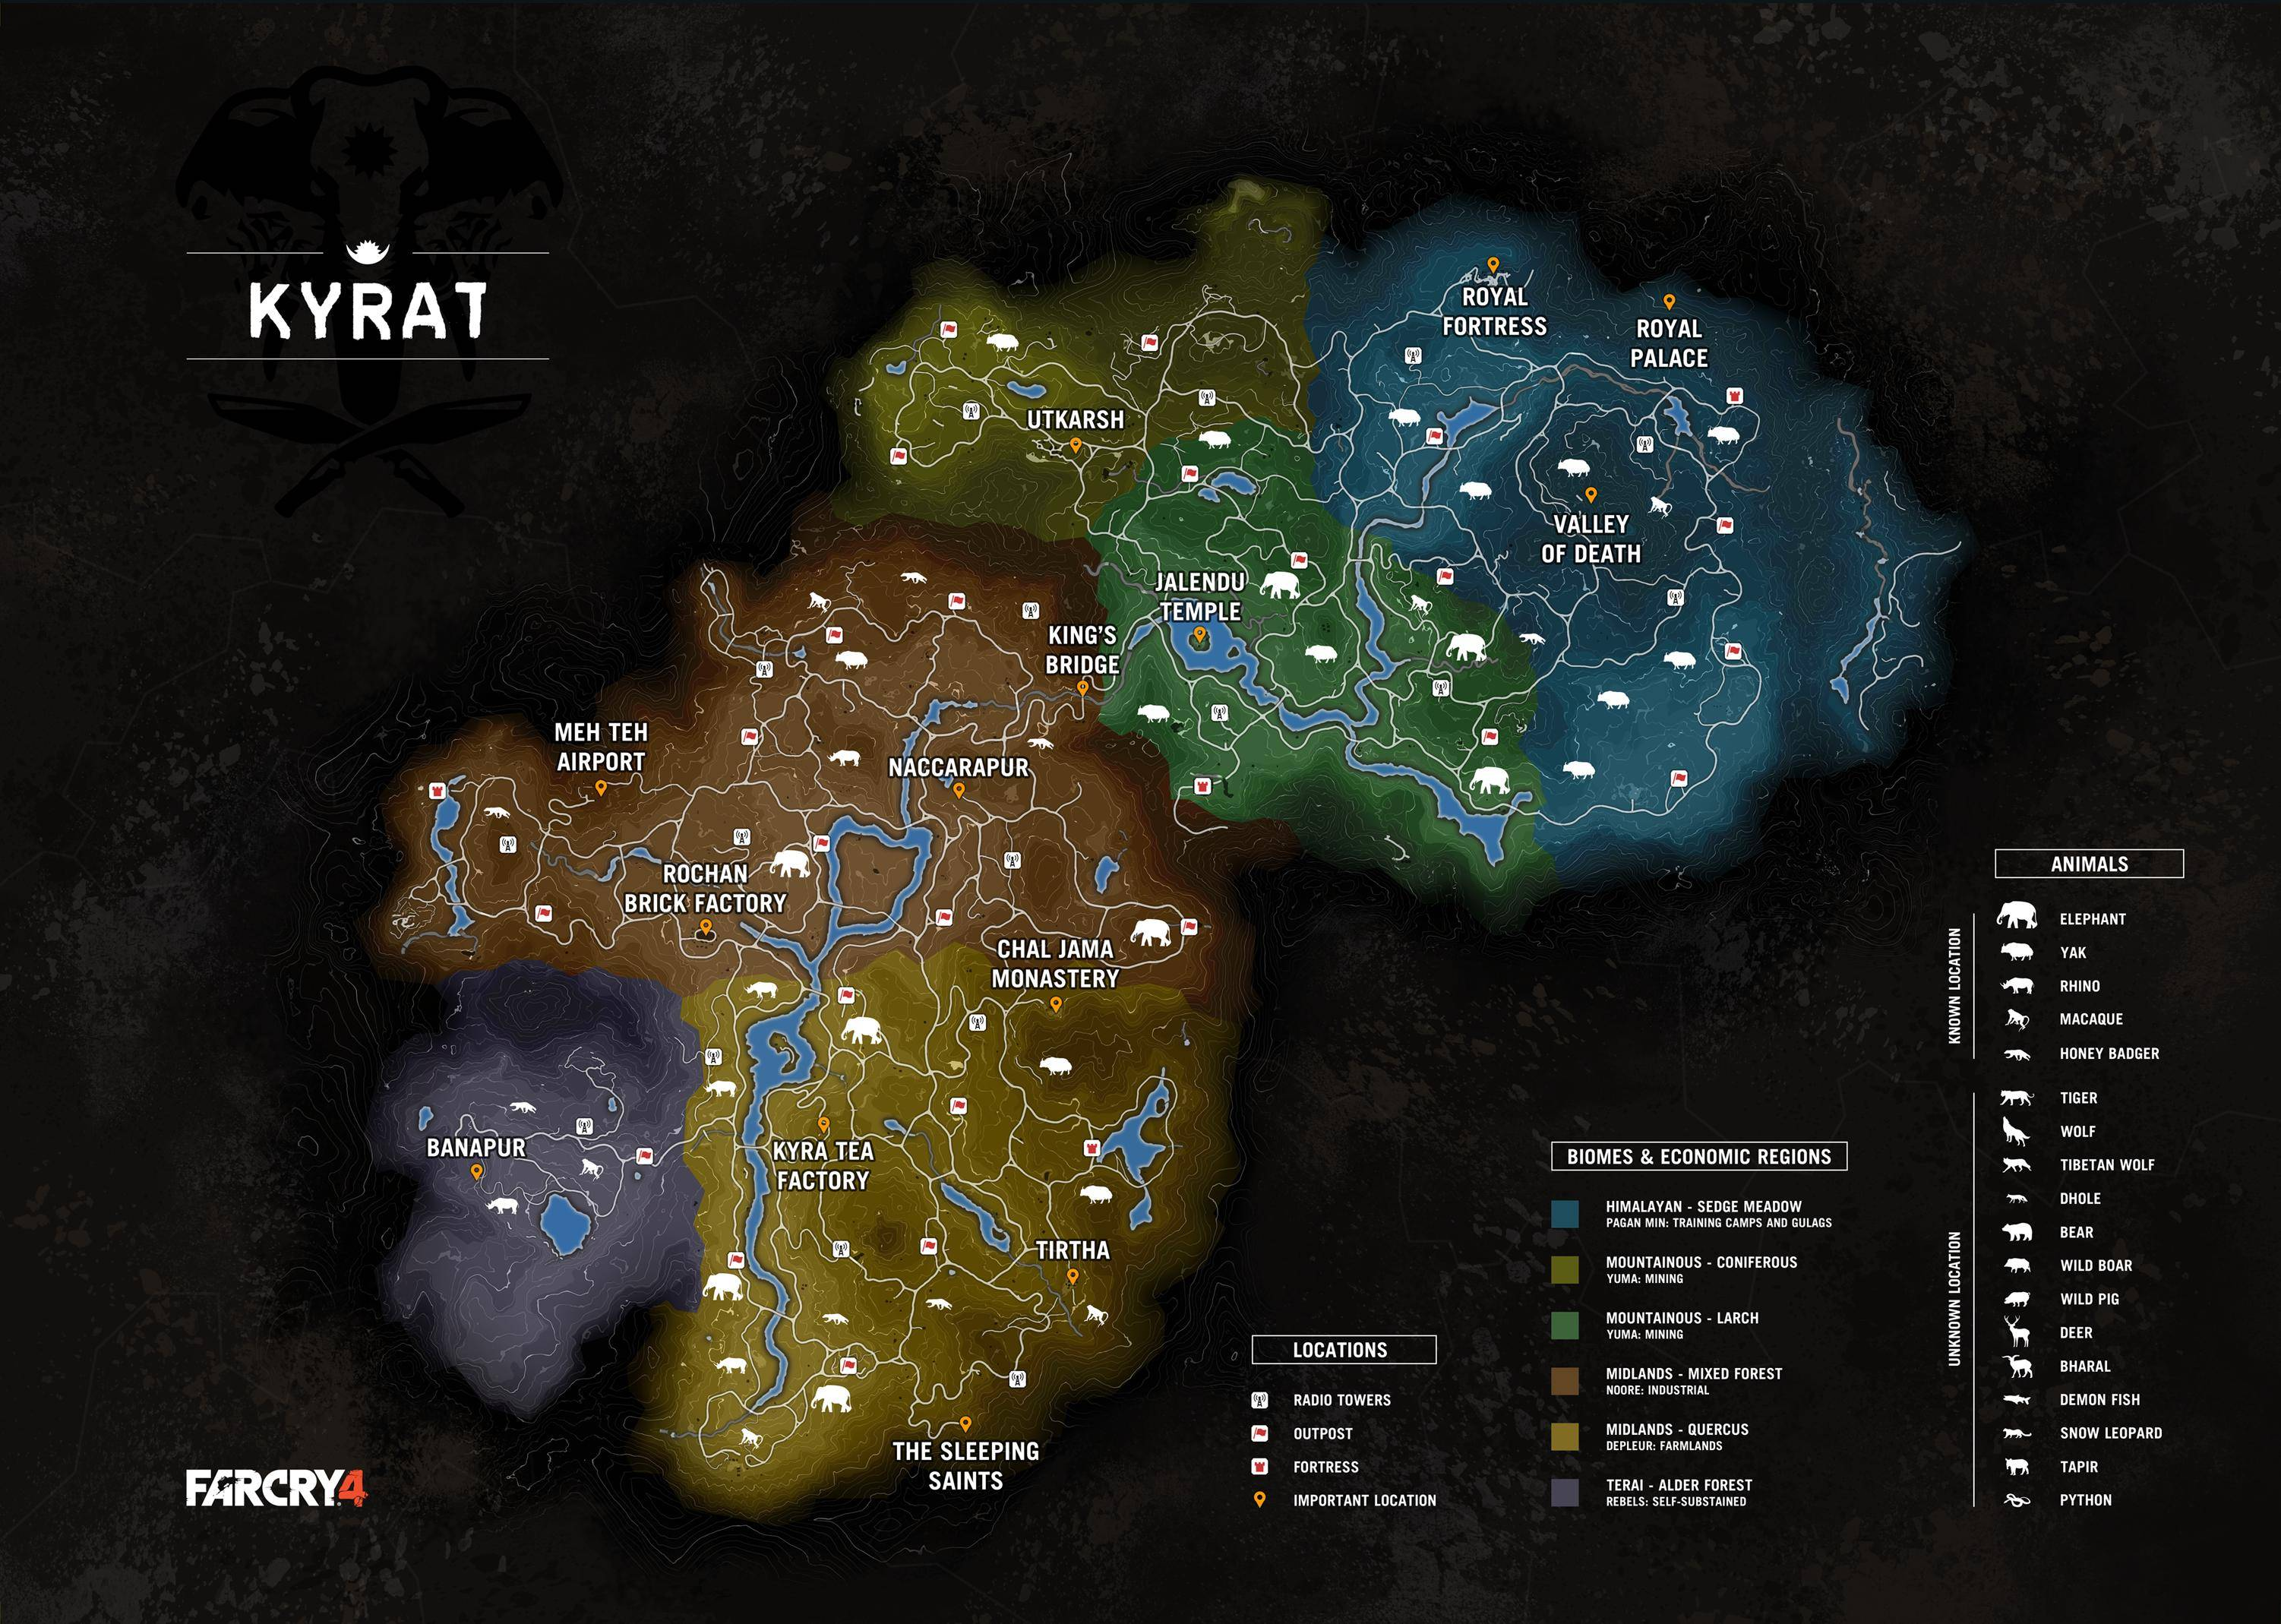 Far Cry 5 Full Map: Take A Look At The Full Map Of Far Cry 4